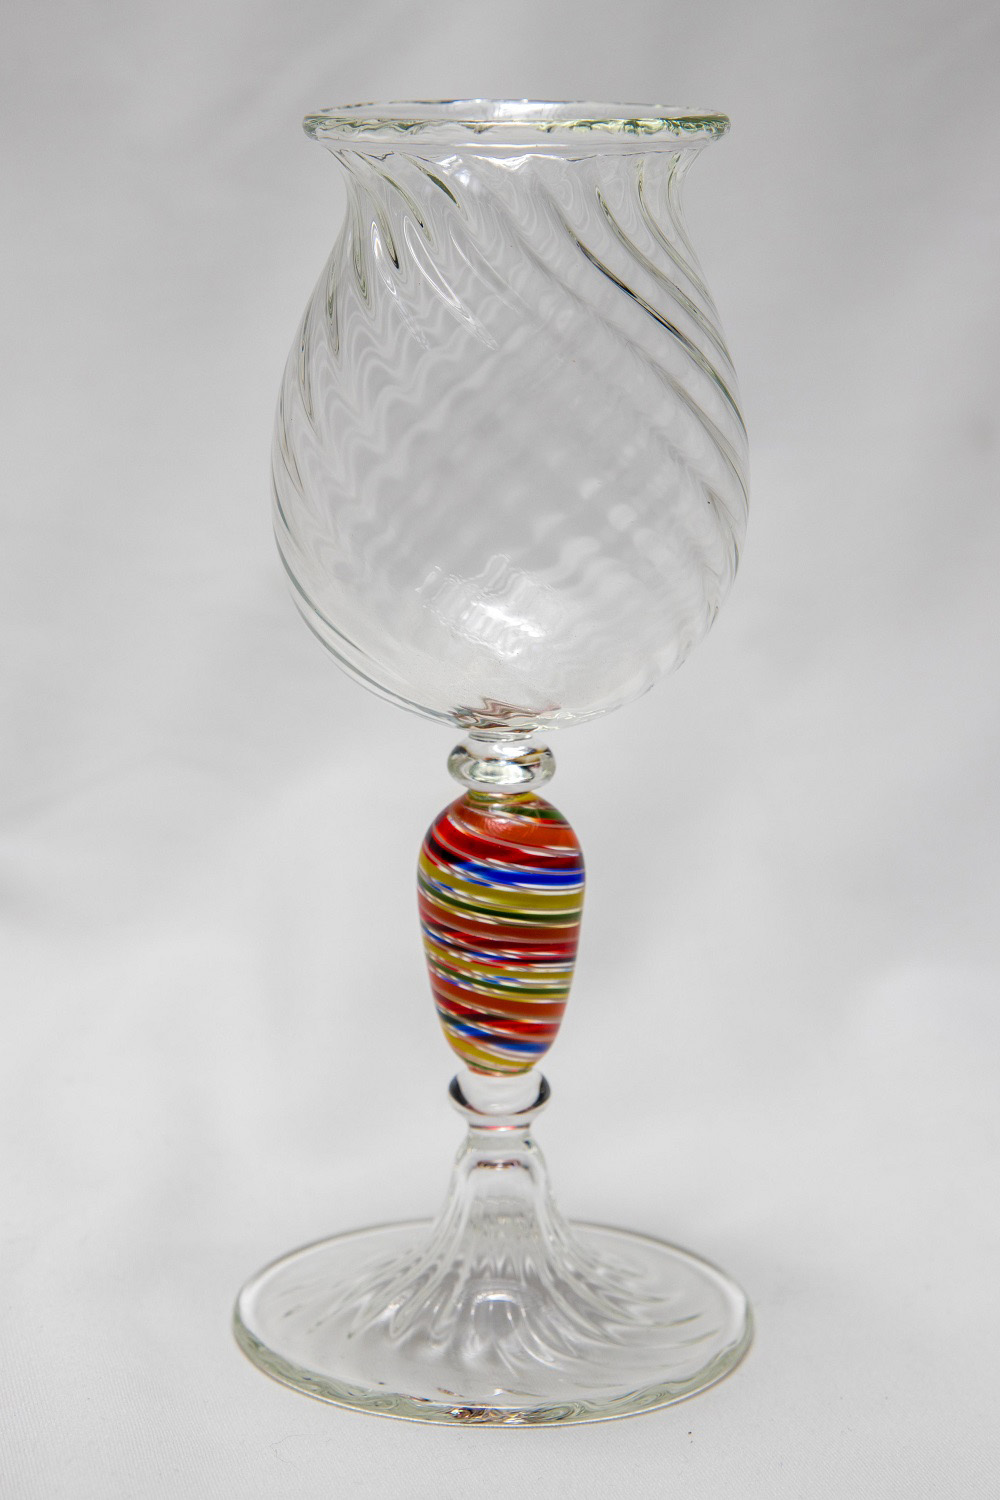 Rainbow Scalloped Goblet - Greg Losco